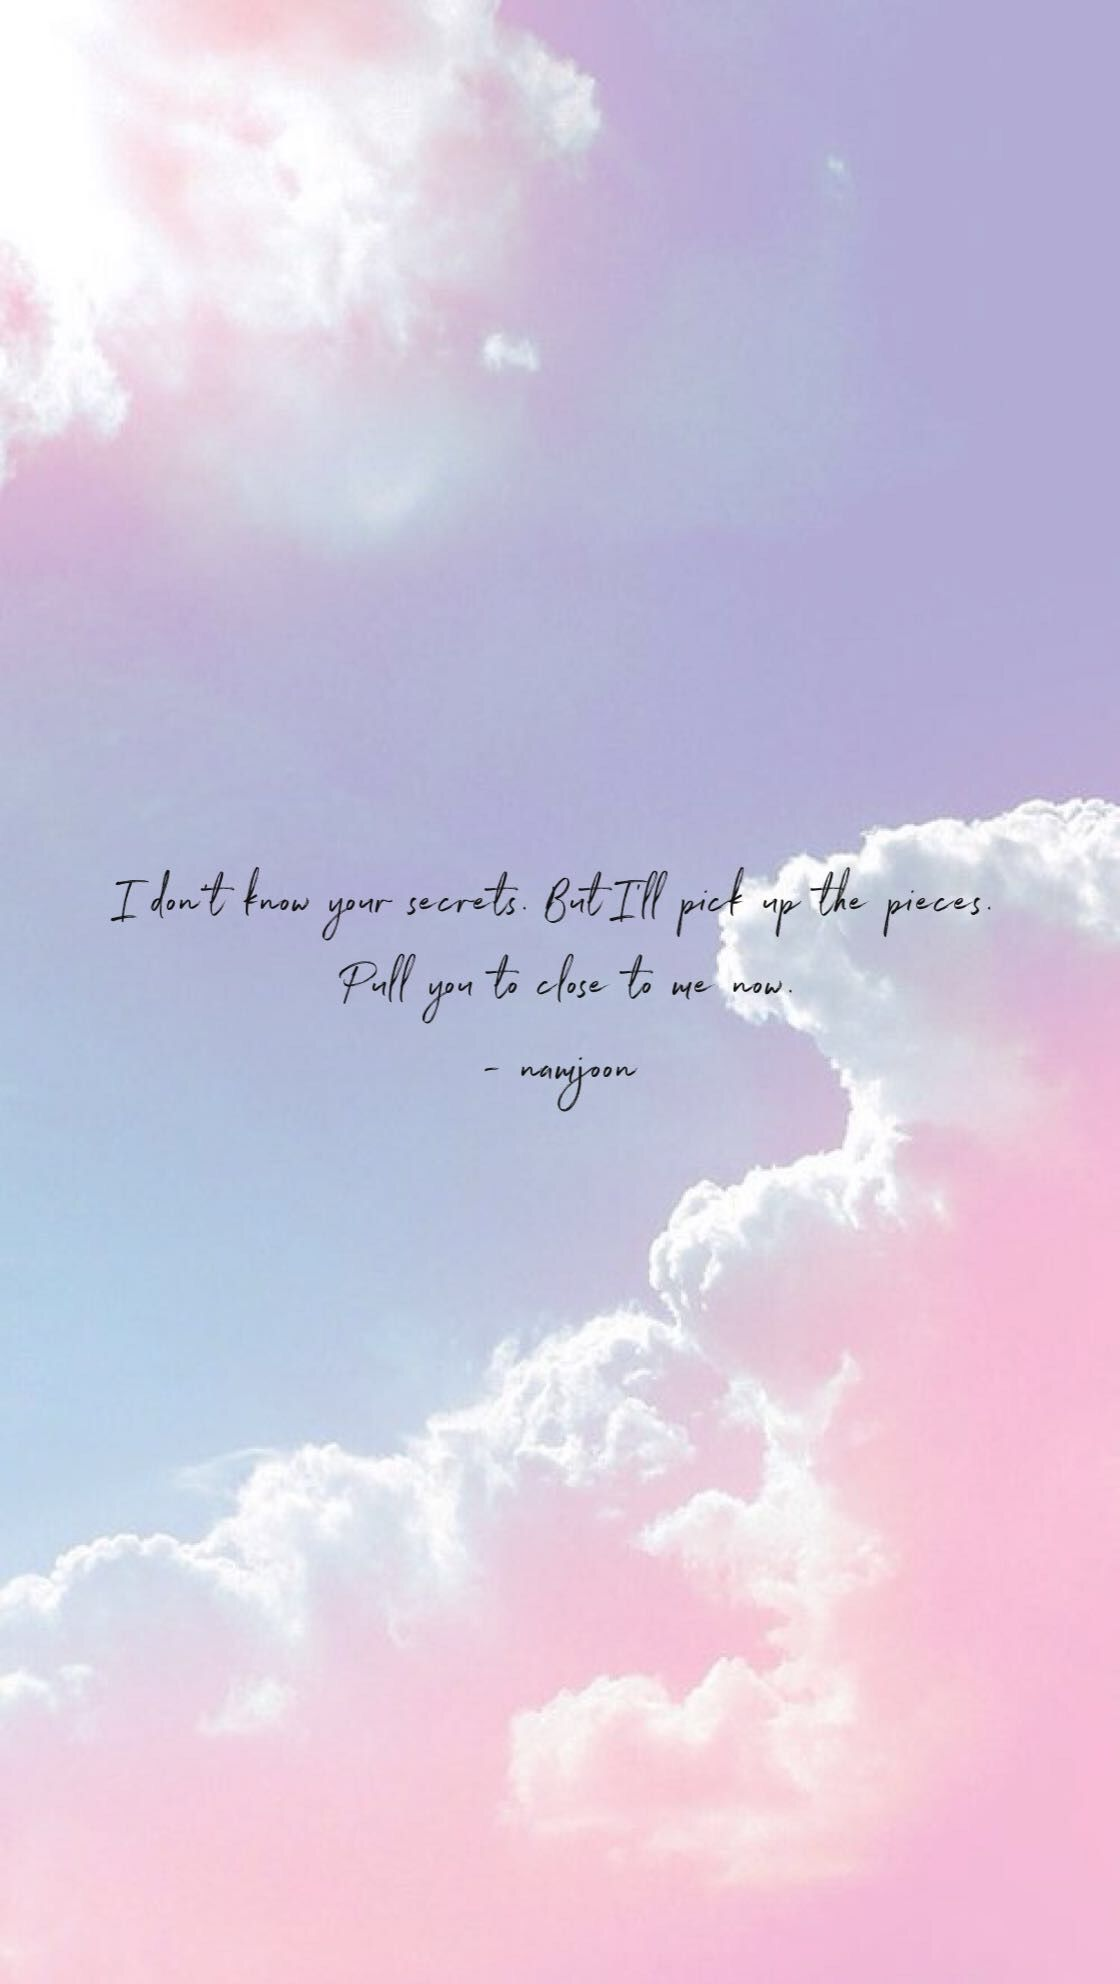 Wallpaper Quotes, Song Bts Waste It On Me Quotes, Hd